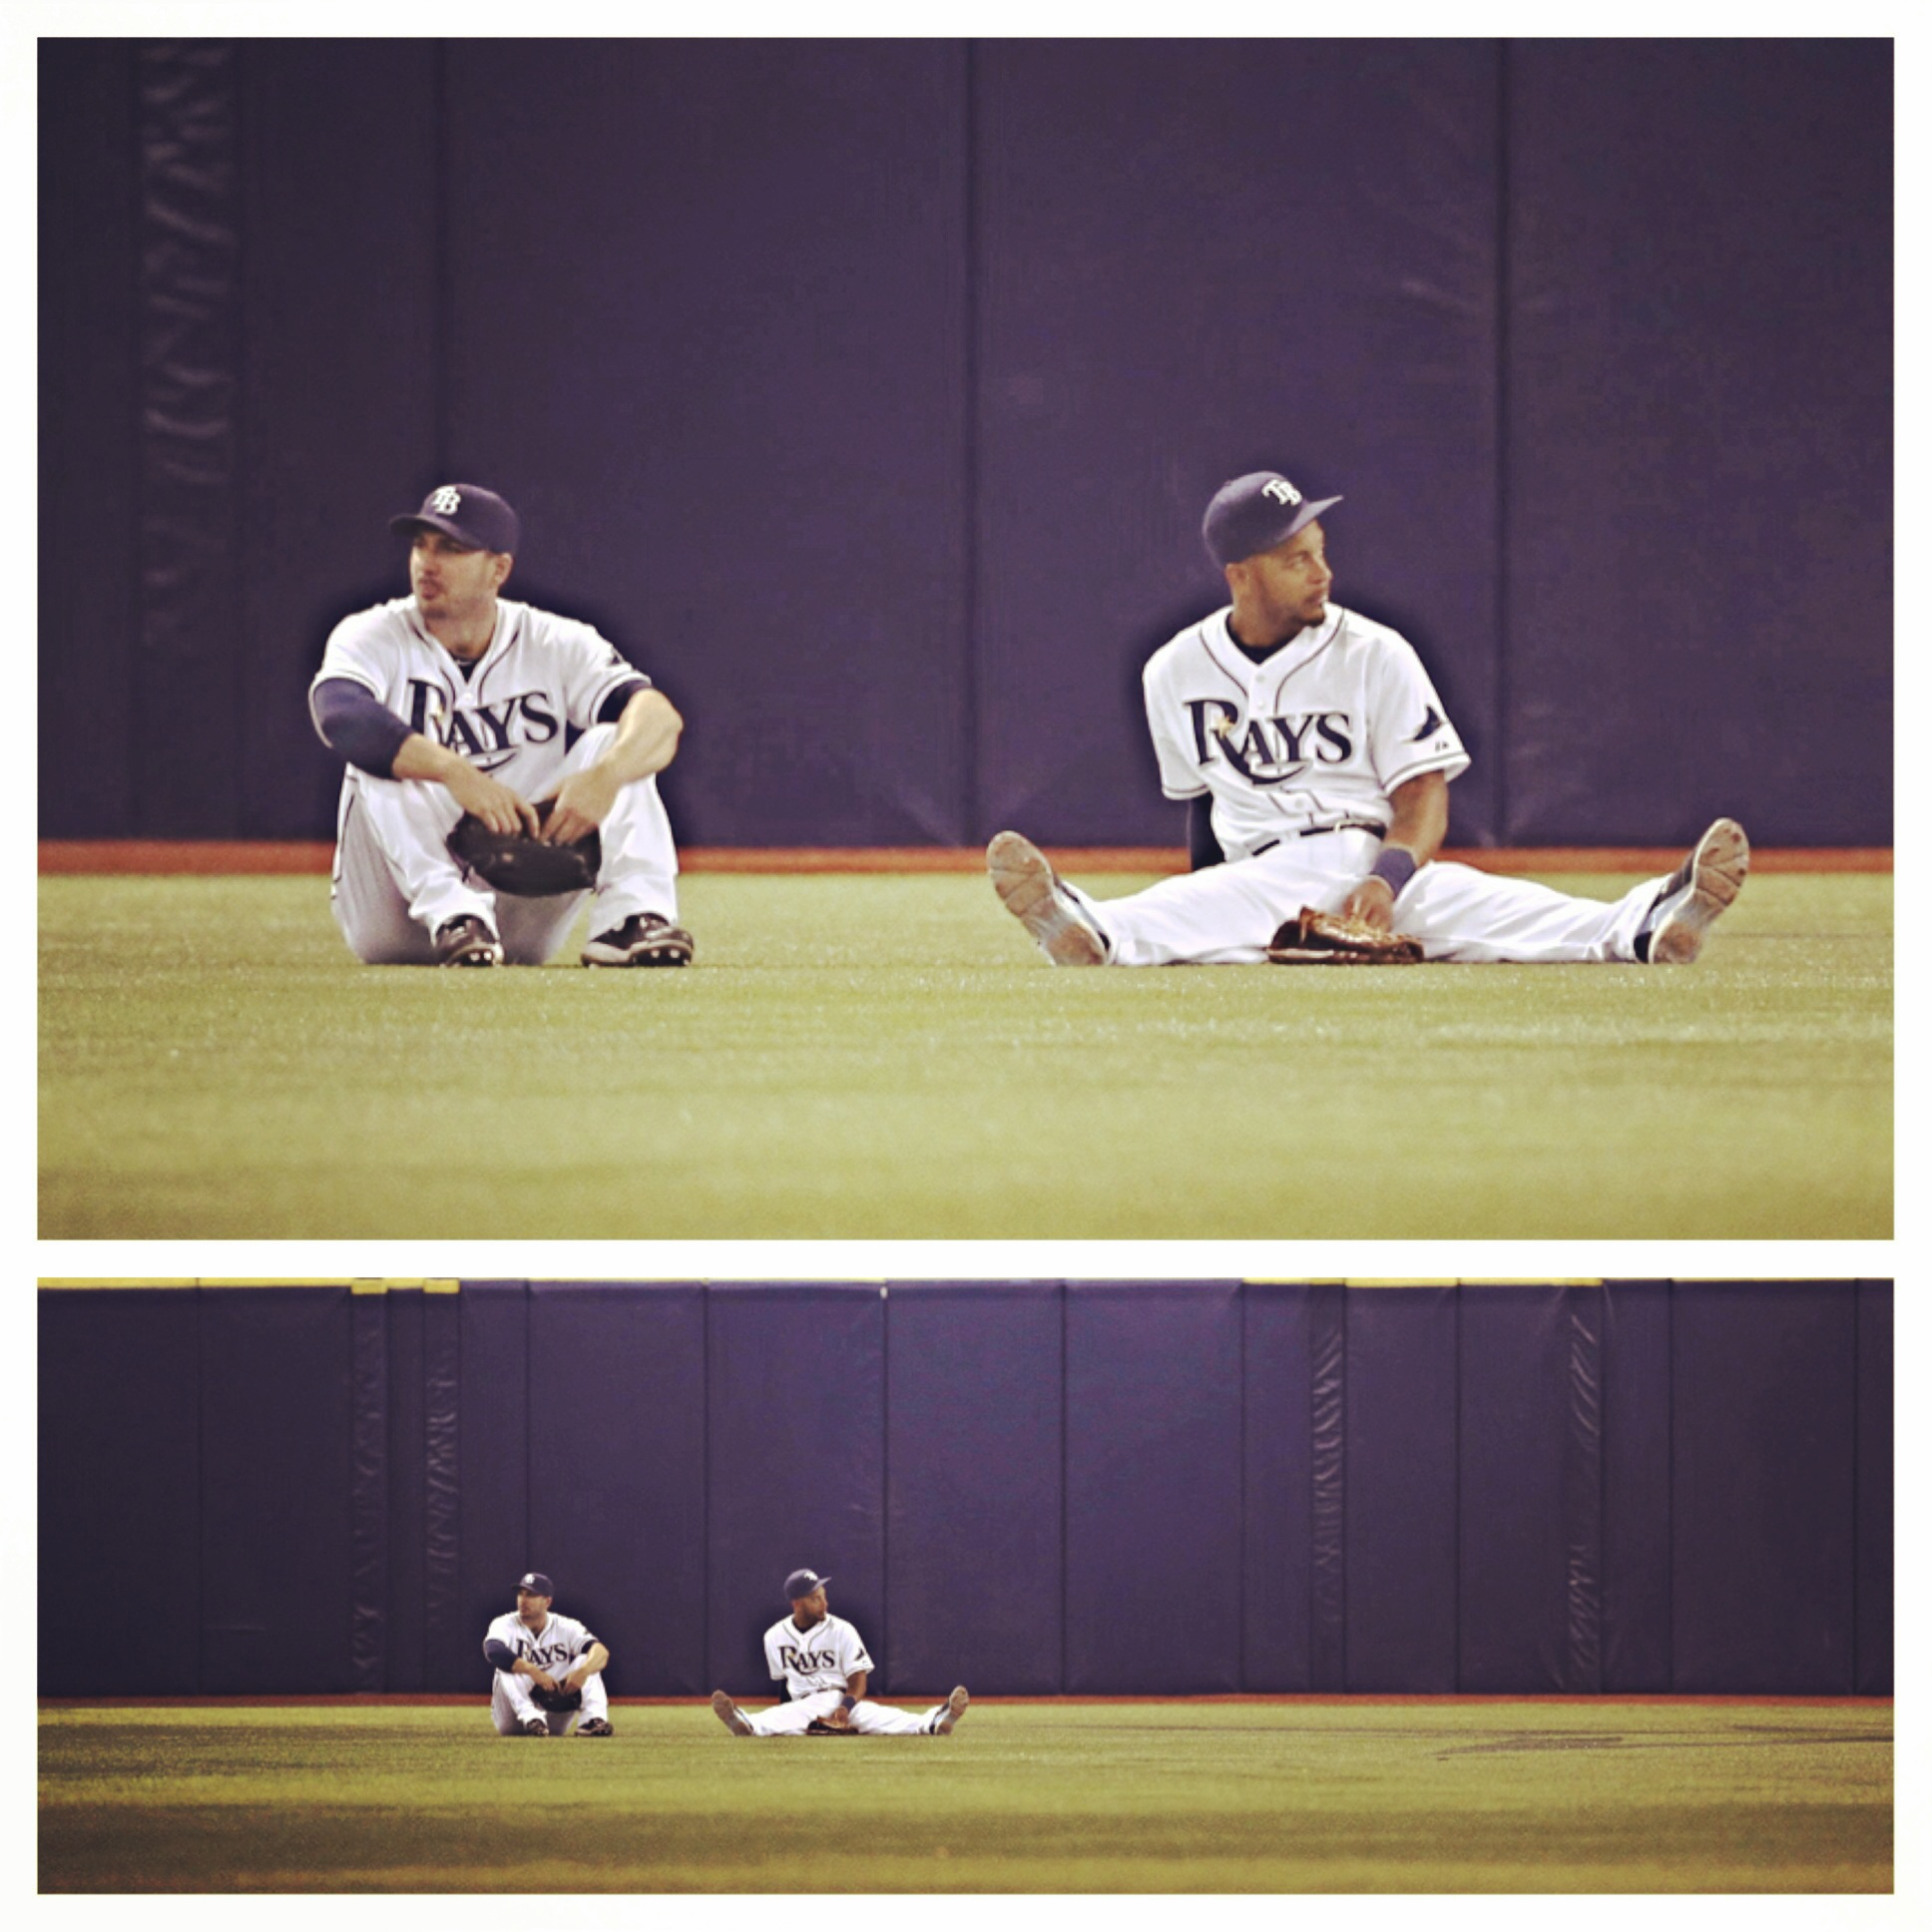 Rays outfielders Looney Tunes